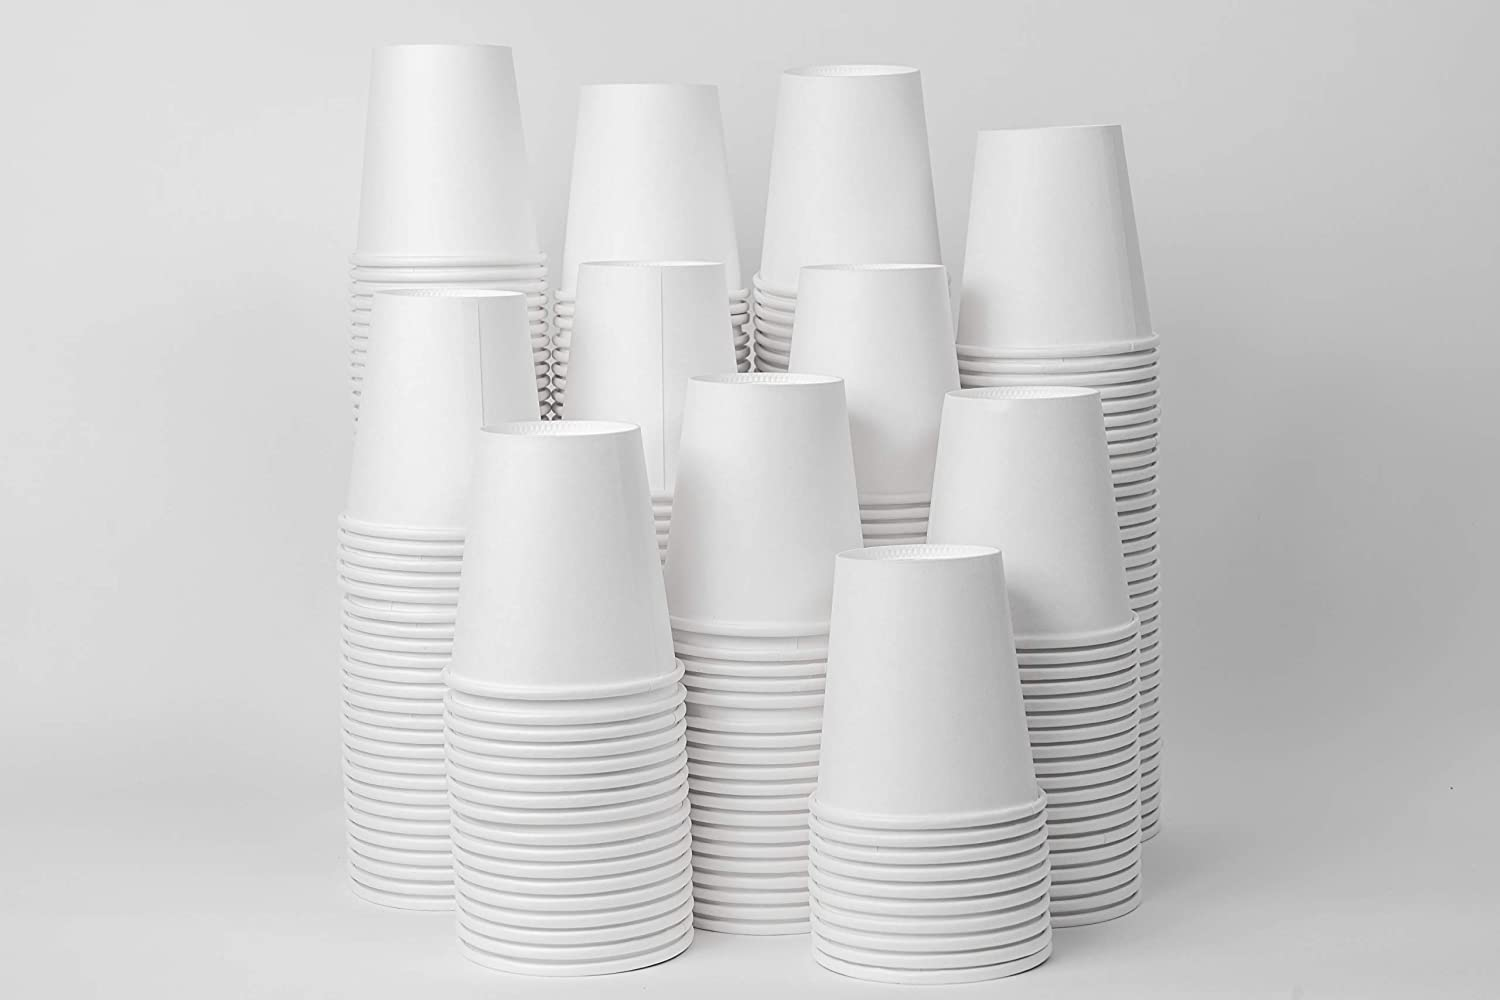 BPD 6oz Disposable Paper Cups for Beverages, Hot Coffee or Water Coolers. Package of 300.